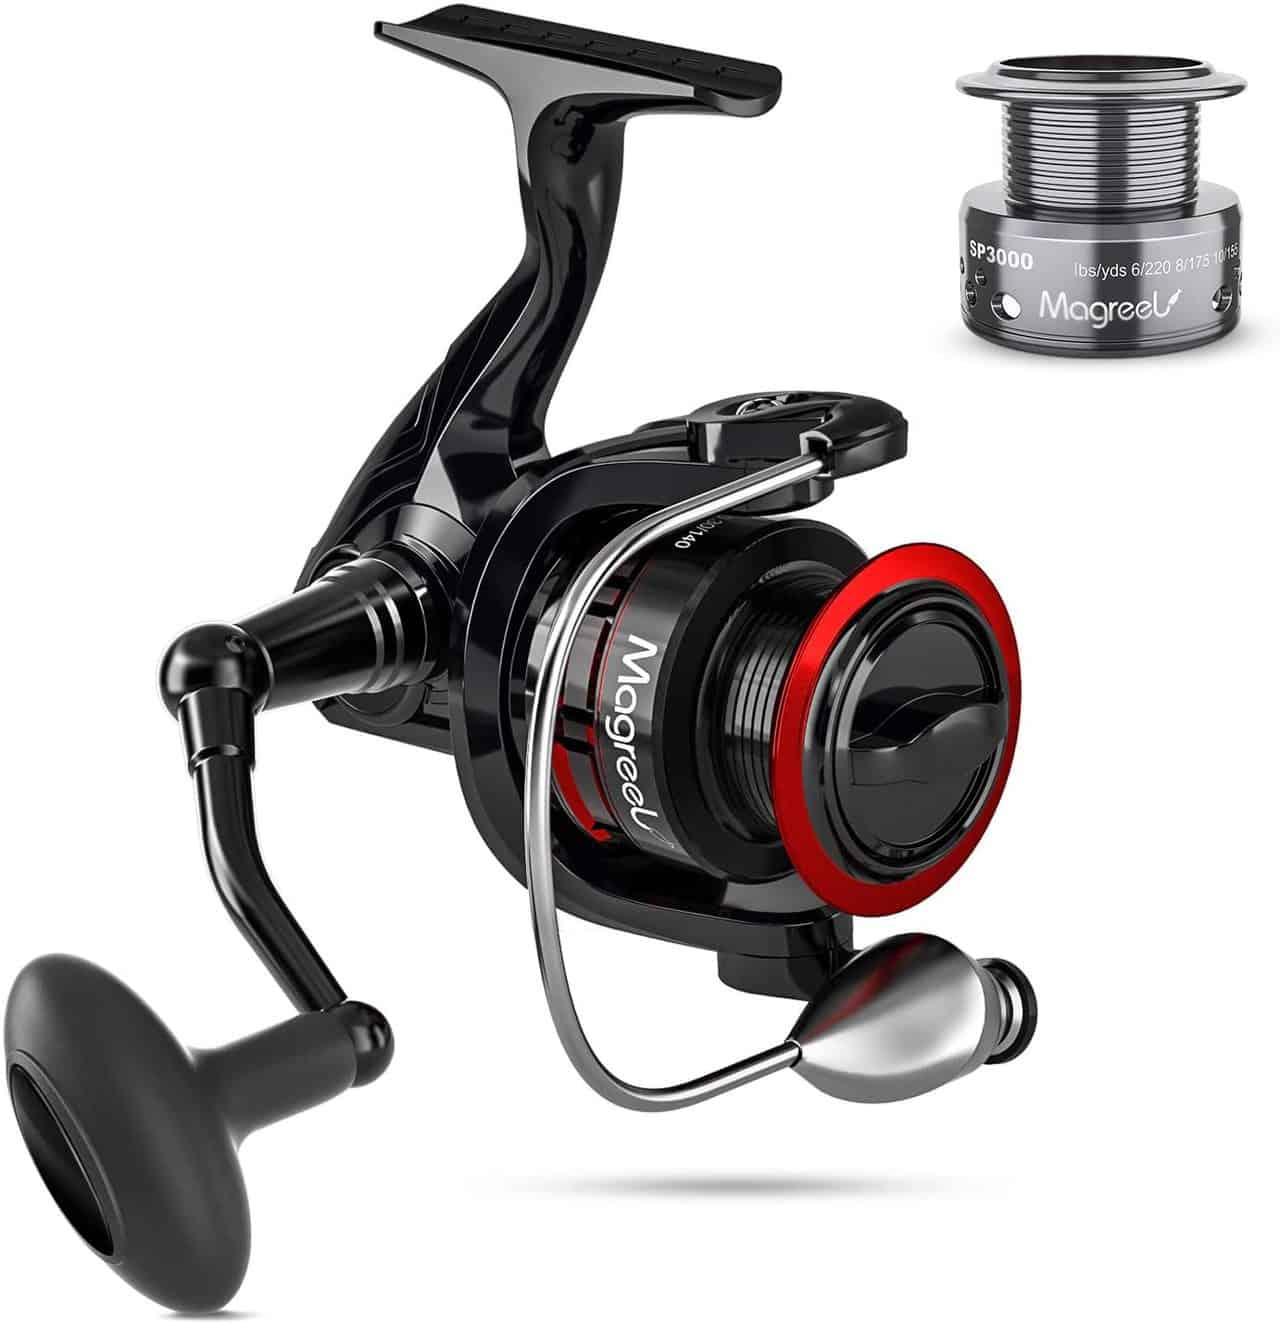 Fishing Spinning Reel by Magreel